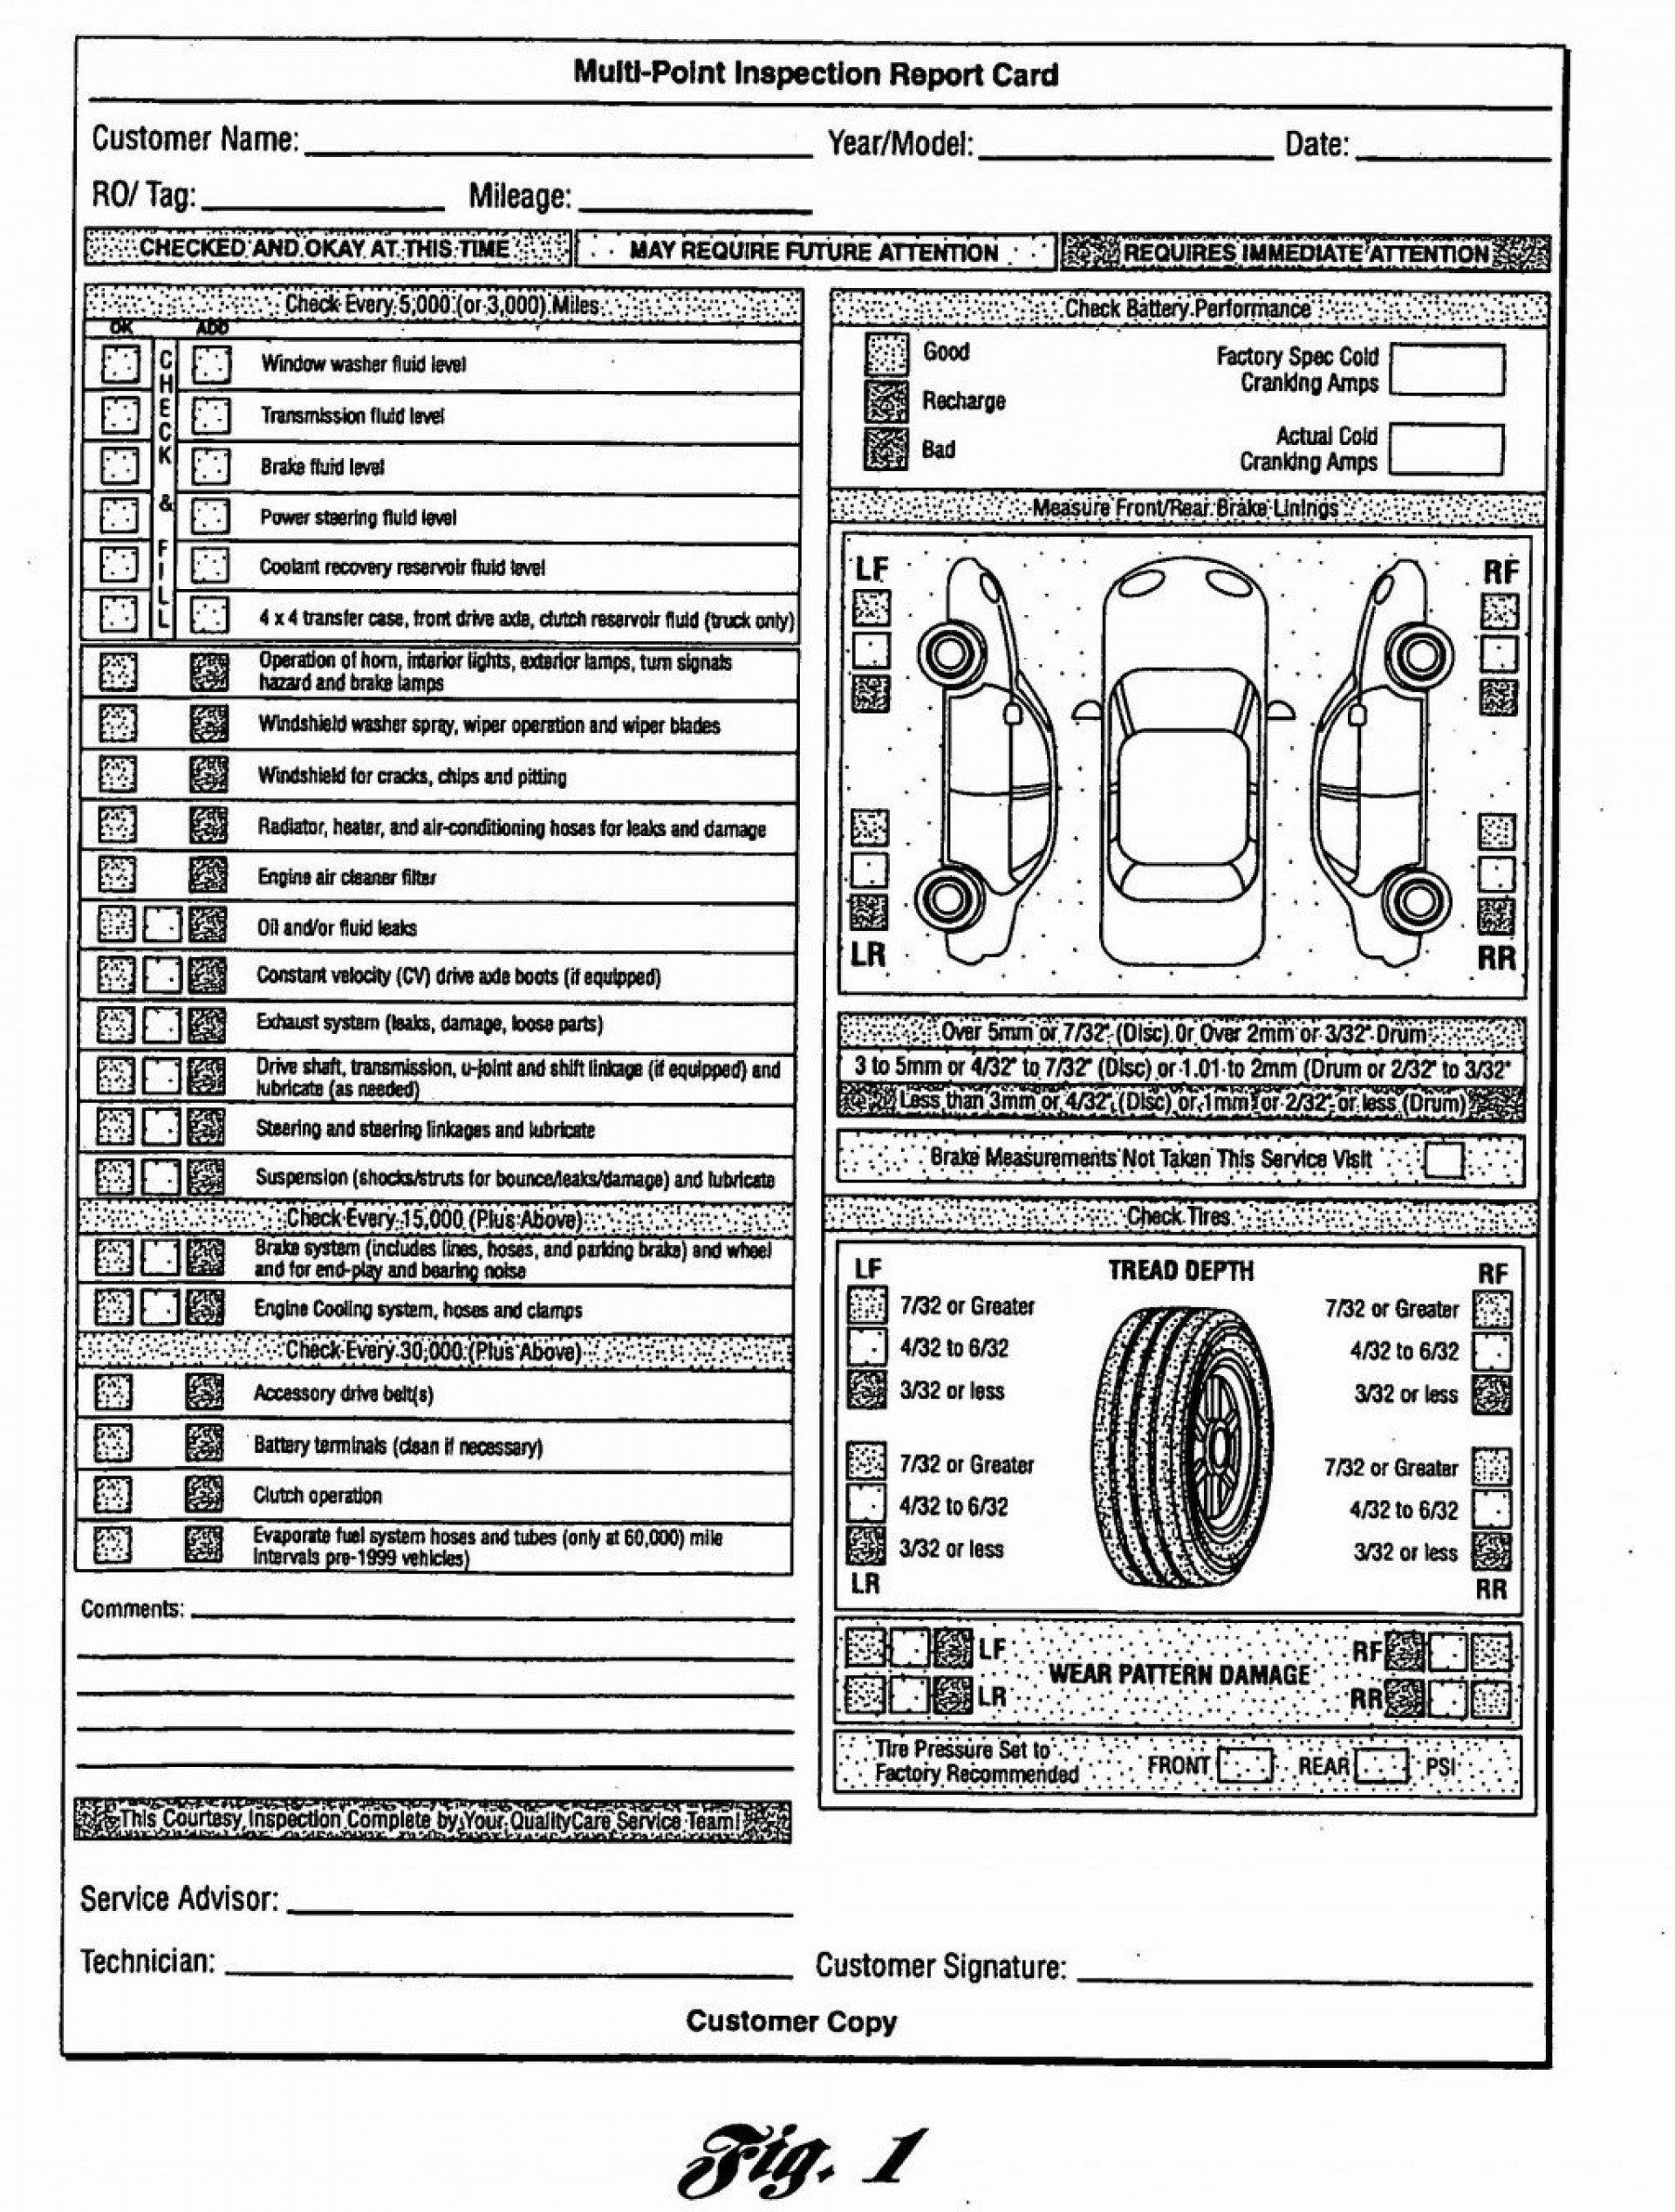 006 Magnificent Vehicle Inspection Form Template Example  Printable Pdf Word1920